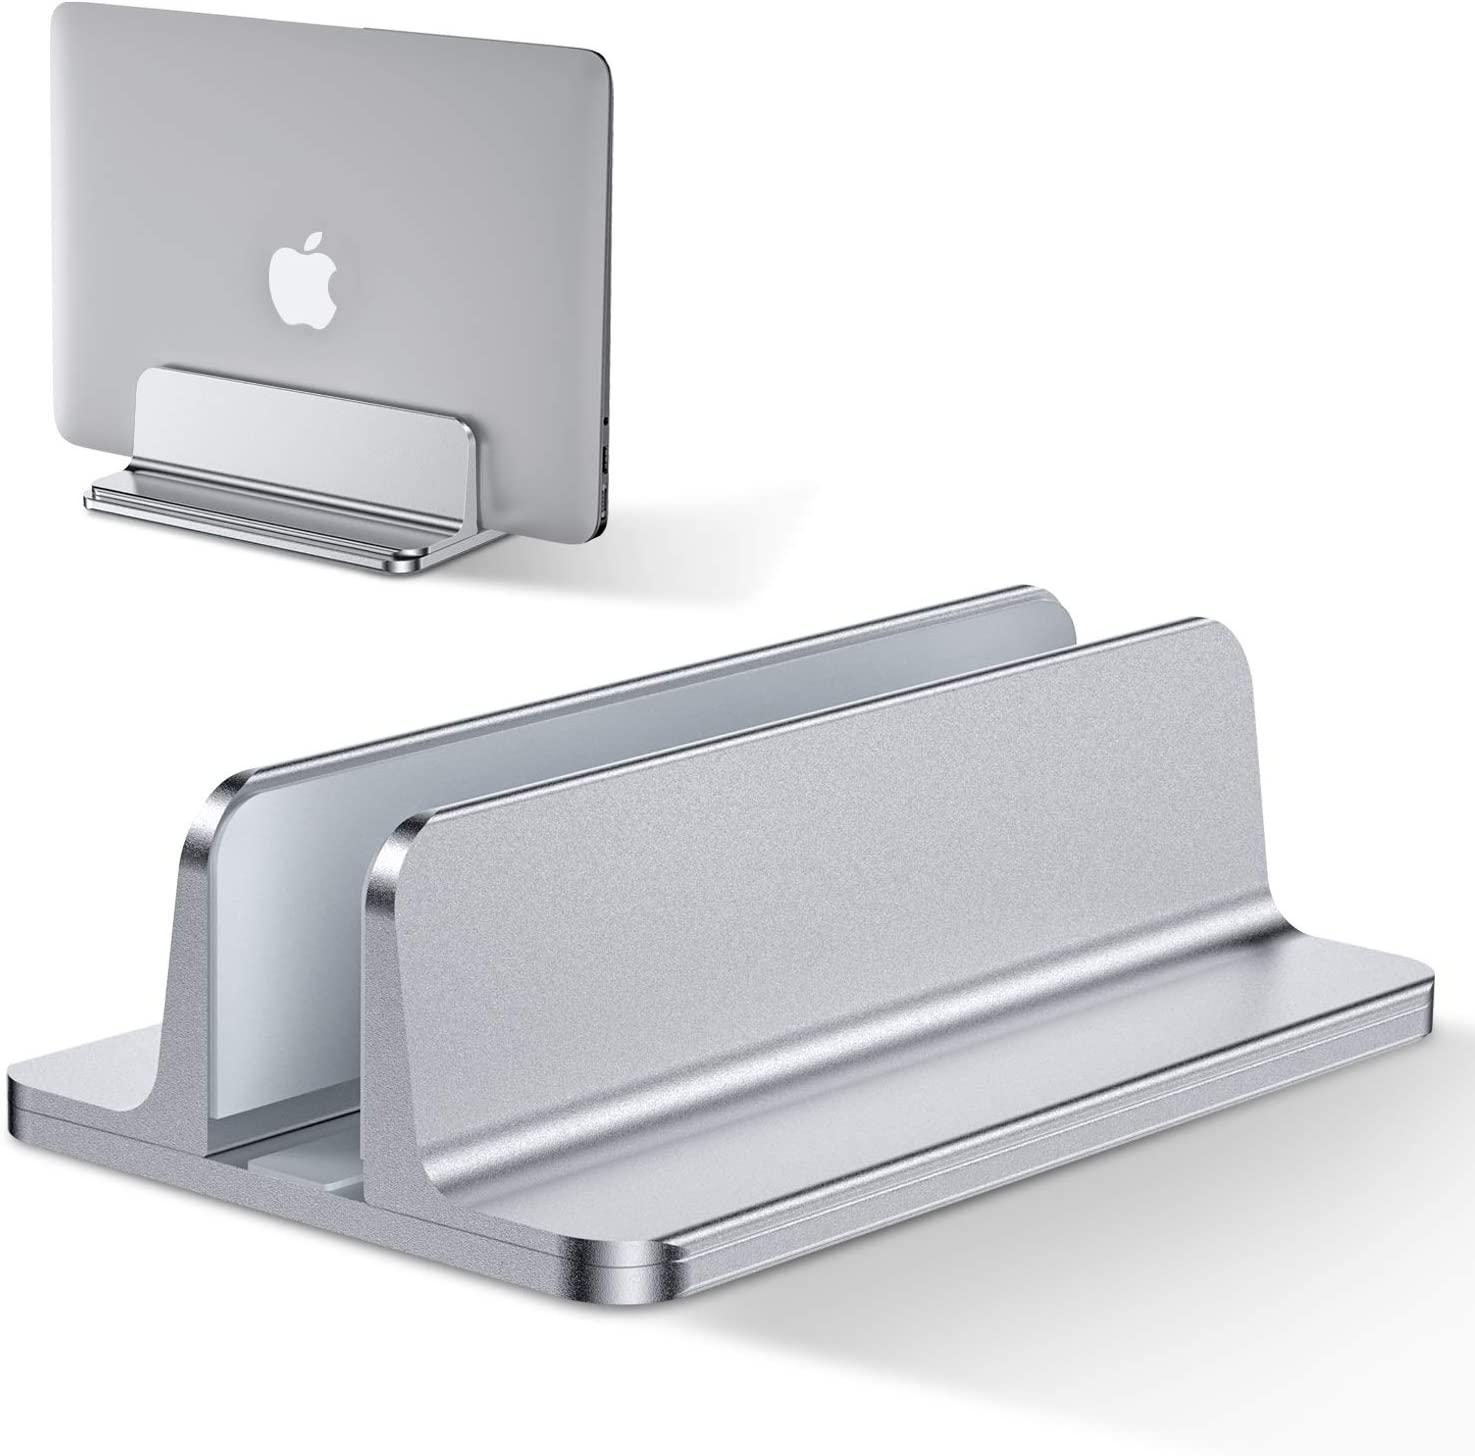 Surface Samsung Huawei Adjustable Size Suitable for MacBook Pro//Air ,Aluminum Adjustable Laptop Holder,Saving Space iPad HP Silver Bewahly Vertical Laptop Stand Dell Lenovo and Others